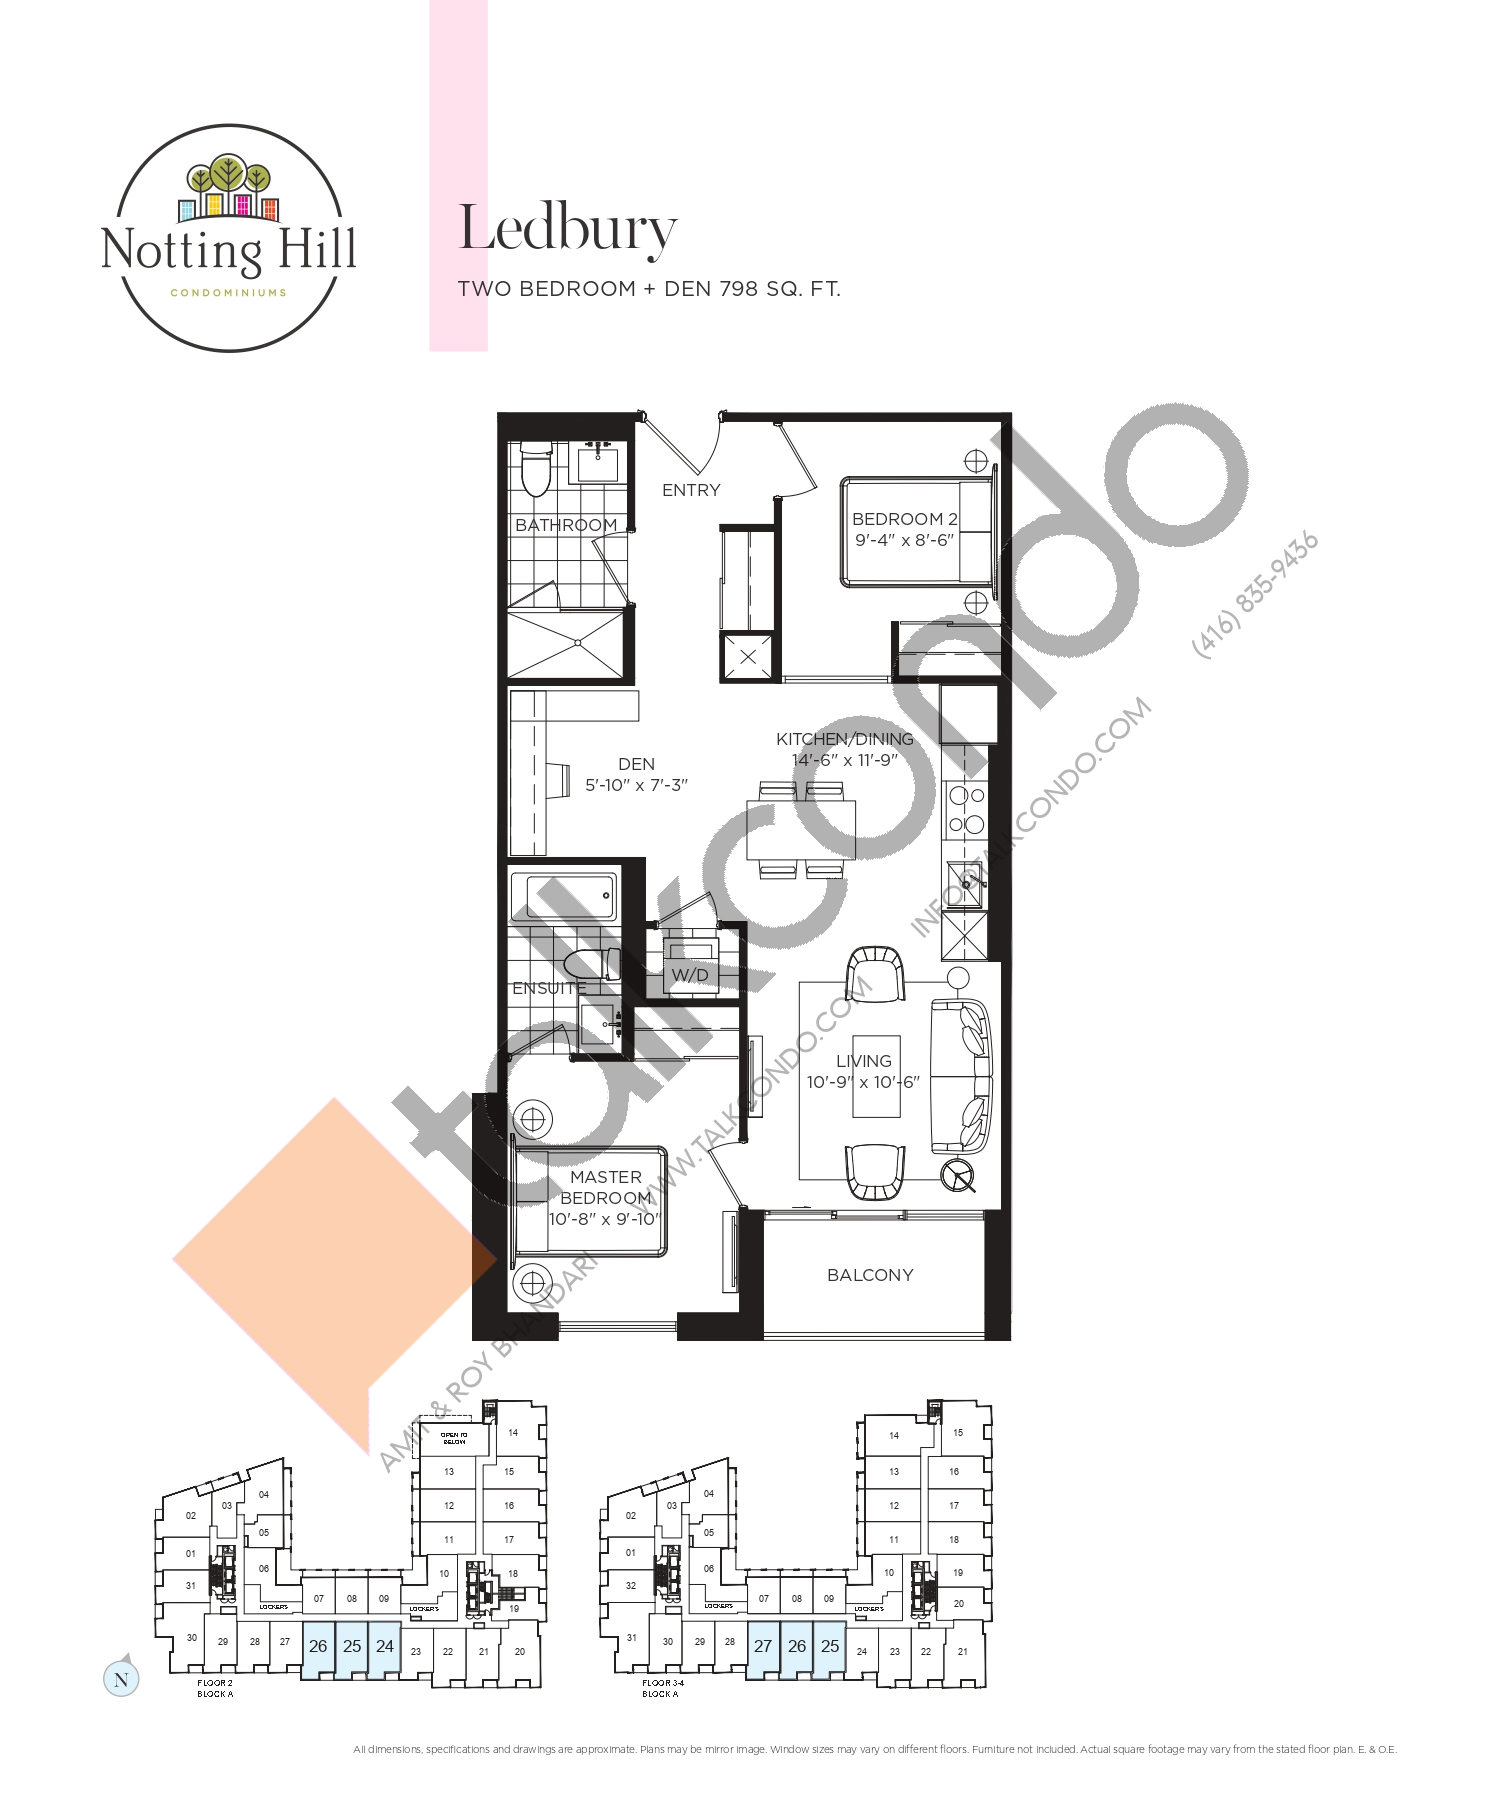 Ledbury Floor Plan at Notting Hill Phase 2 Condos - 798 sq.ft